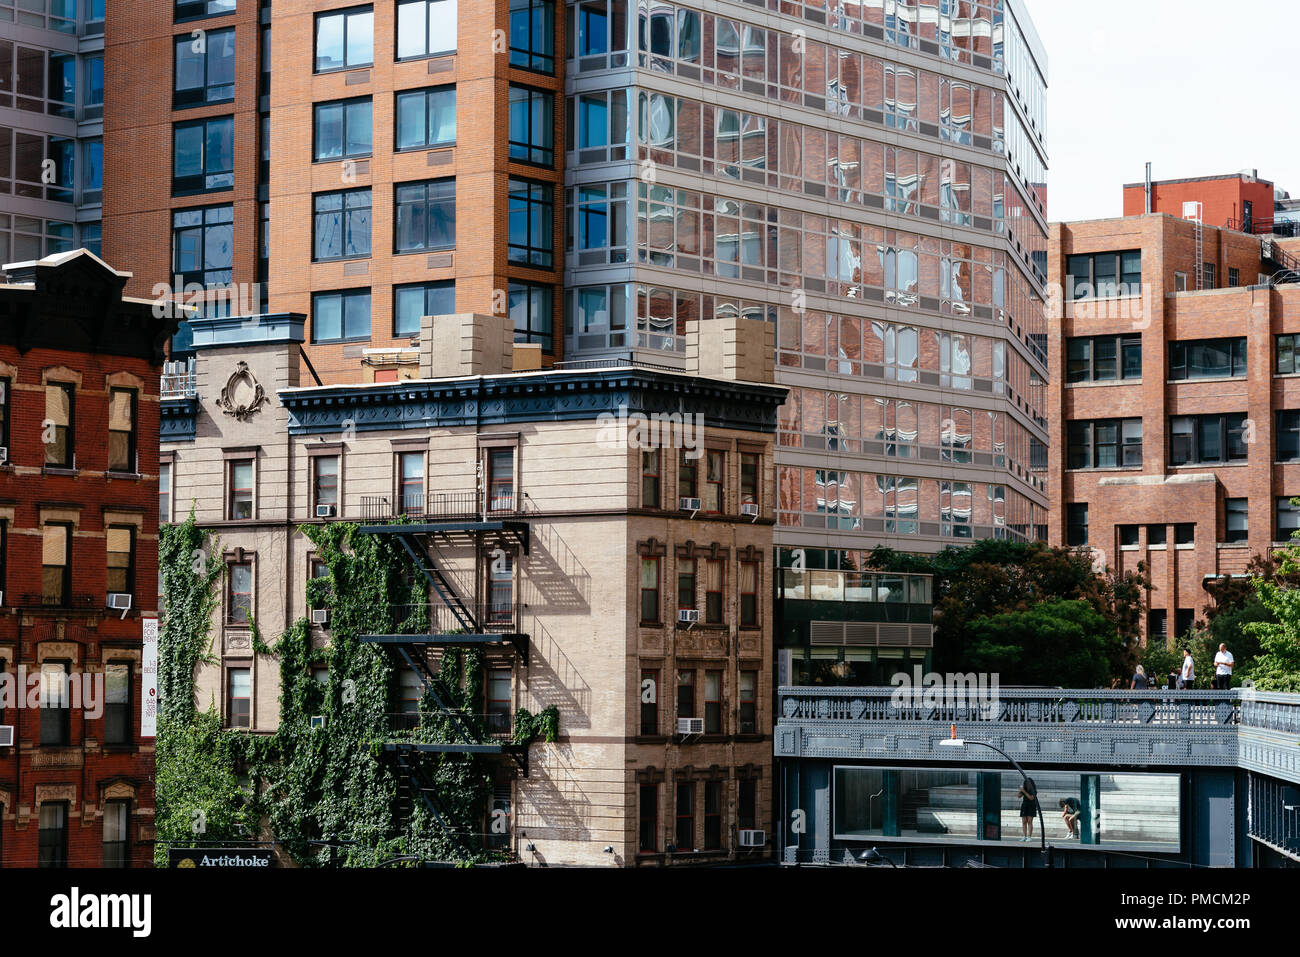 New York City, USA - June 22, 2018: View of Chelsea from High Line. The High Line is an elevated linear park, greenway and rail trail. It was created  - Stock Image